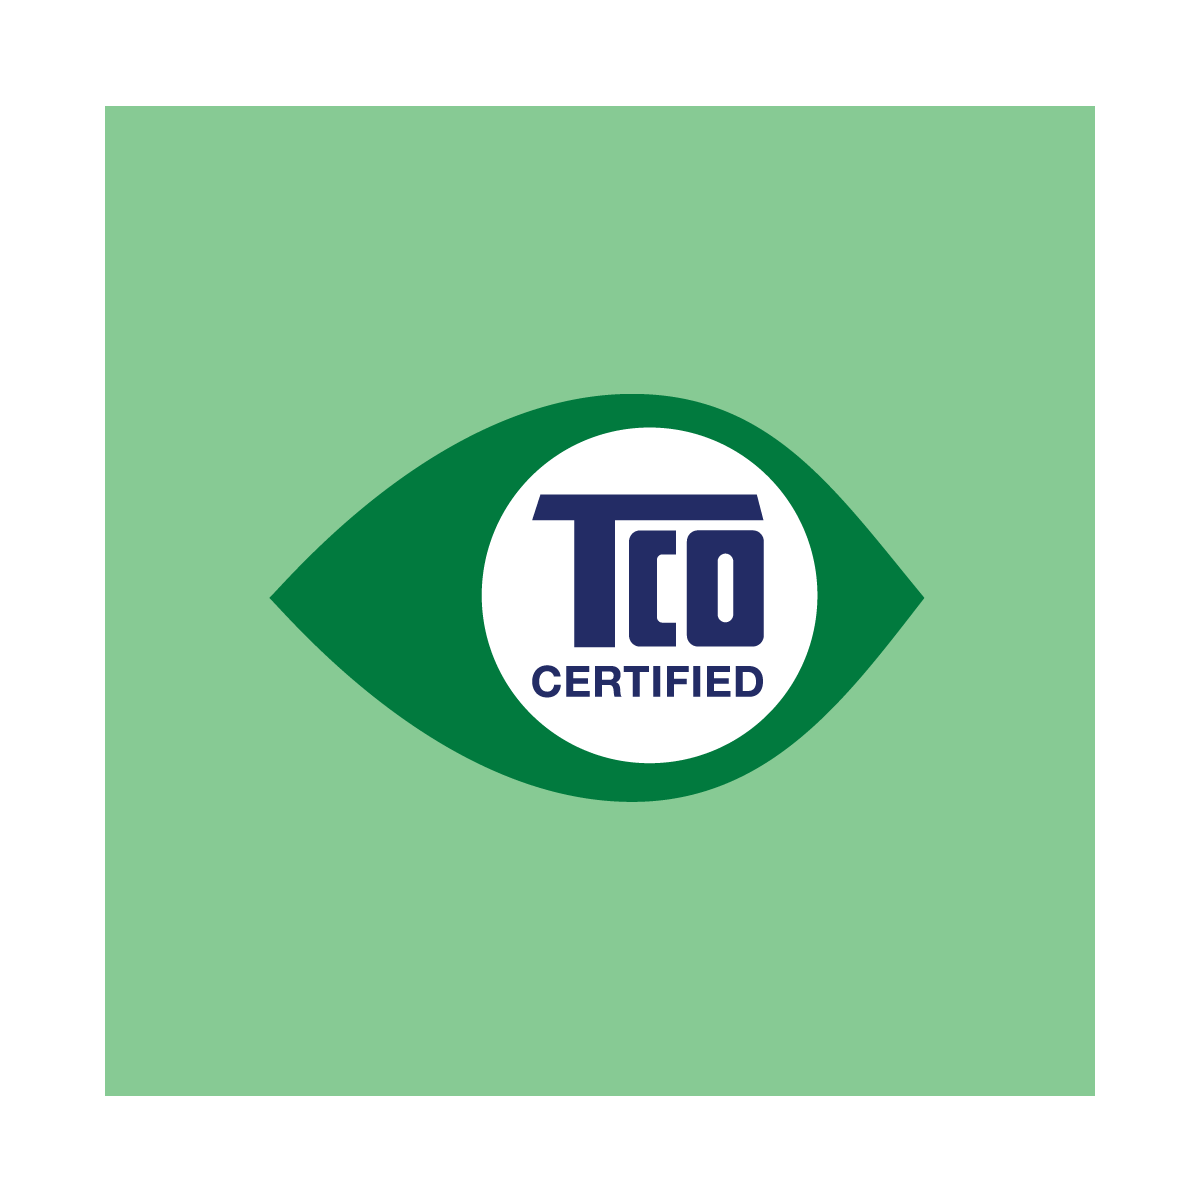 Why TCO Certified?